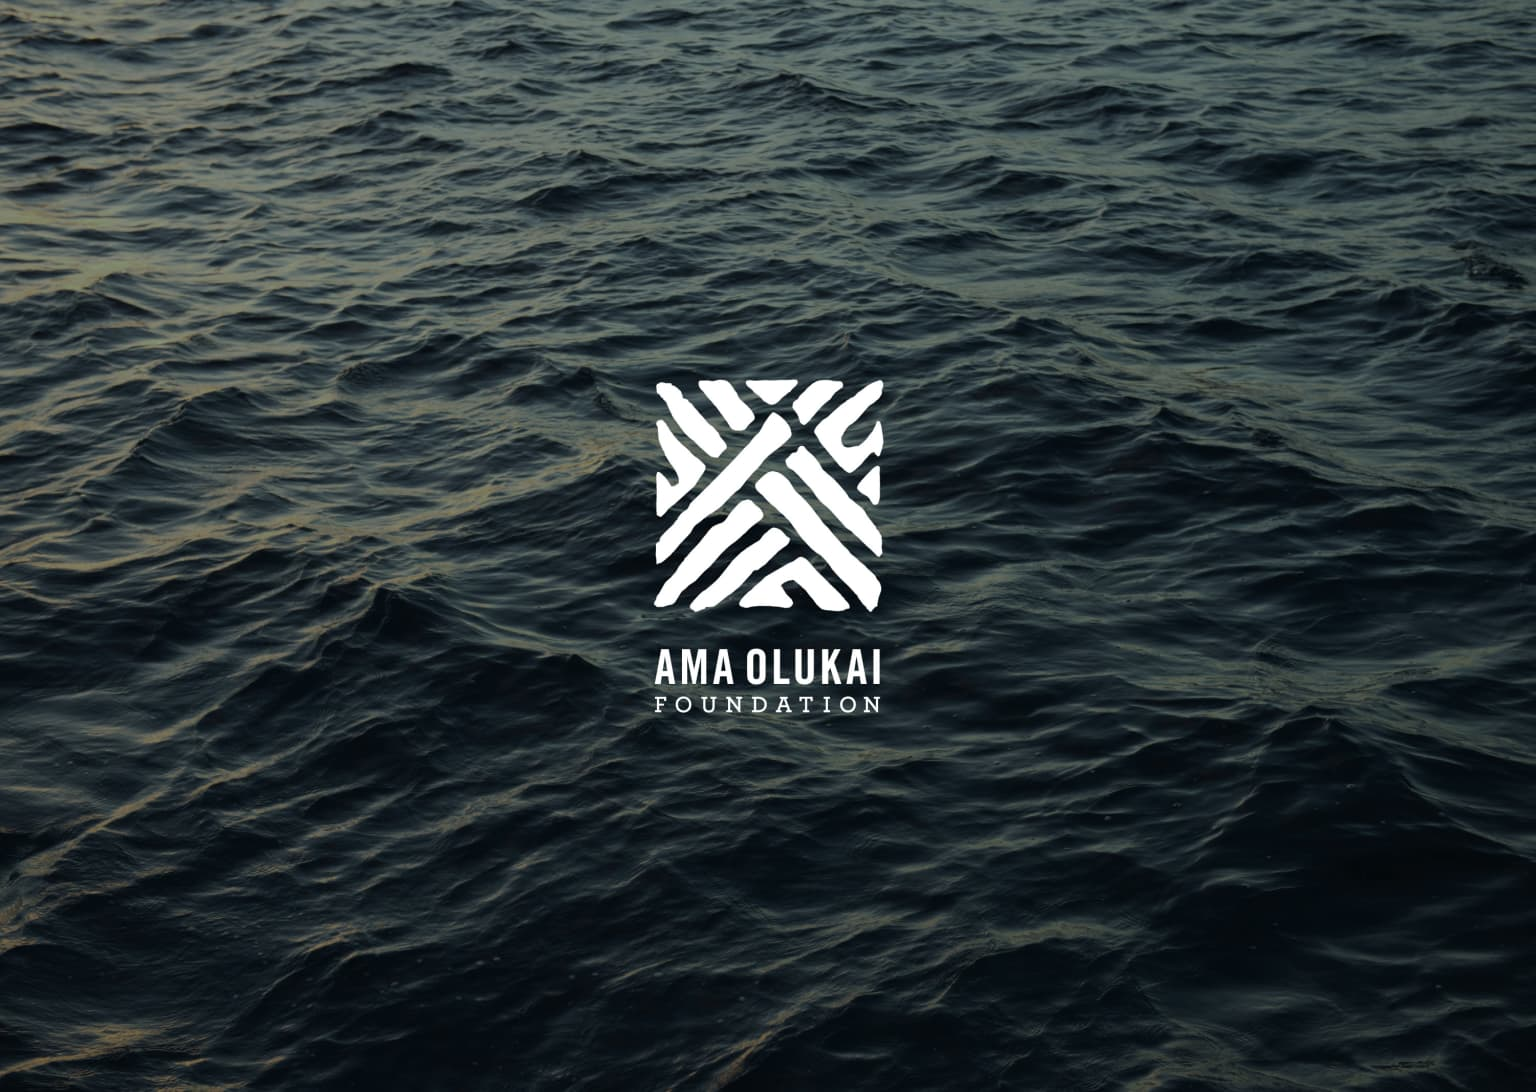 Ama OluKai Foundation Identity